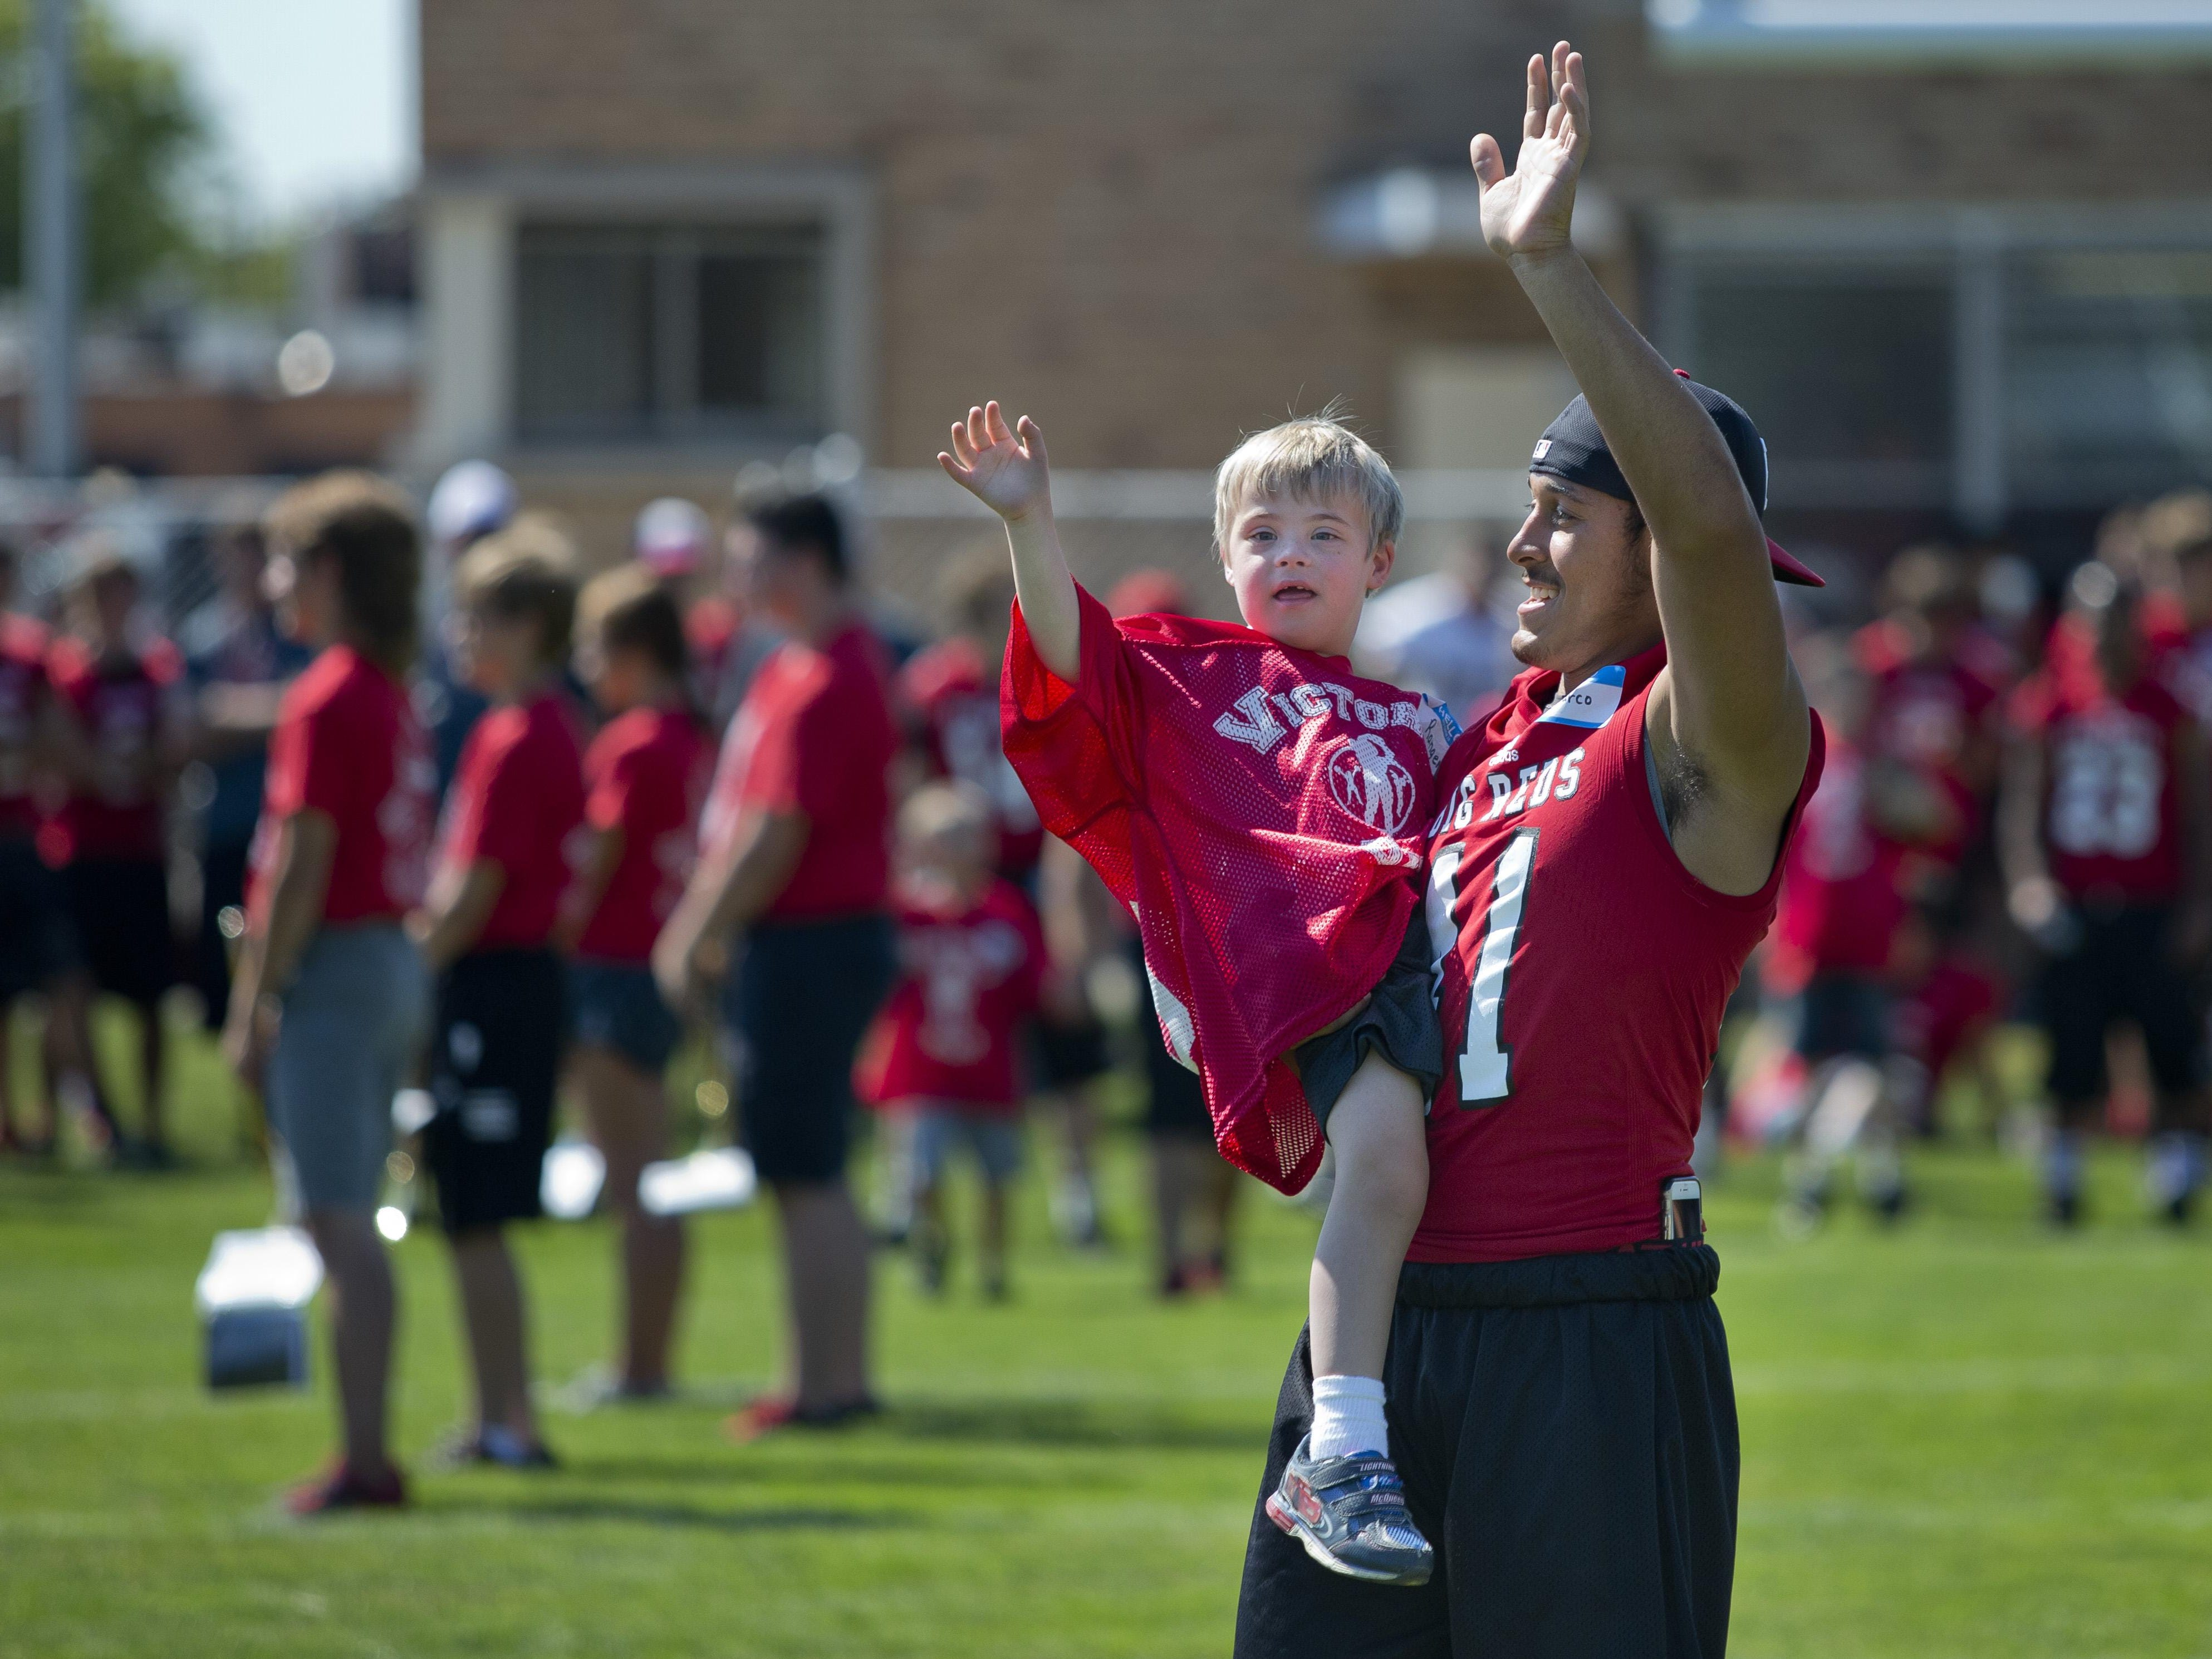 Marco Bolar carries Ranger Hopp as they wave to the audience during Victory Day Saturday, August 15, 2015 in Memorial Stadium at Port Huron High School. The event paired special needs students with mentors from the football and cheerleading teams.